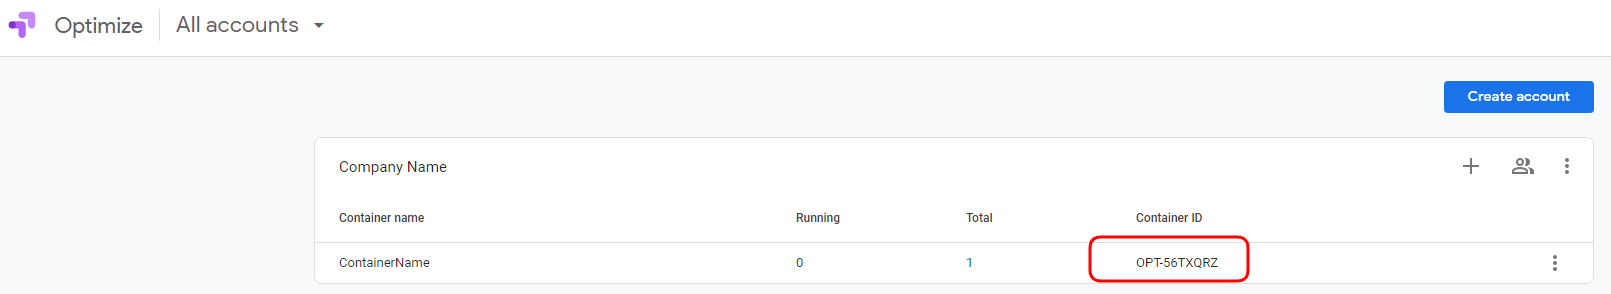 Google Optimize Container ID